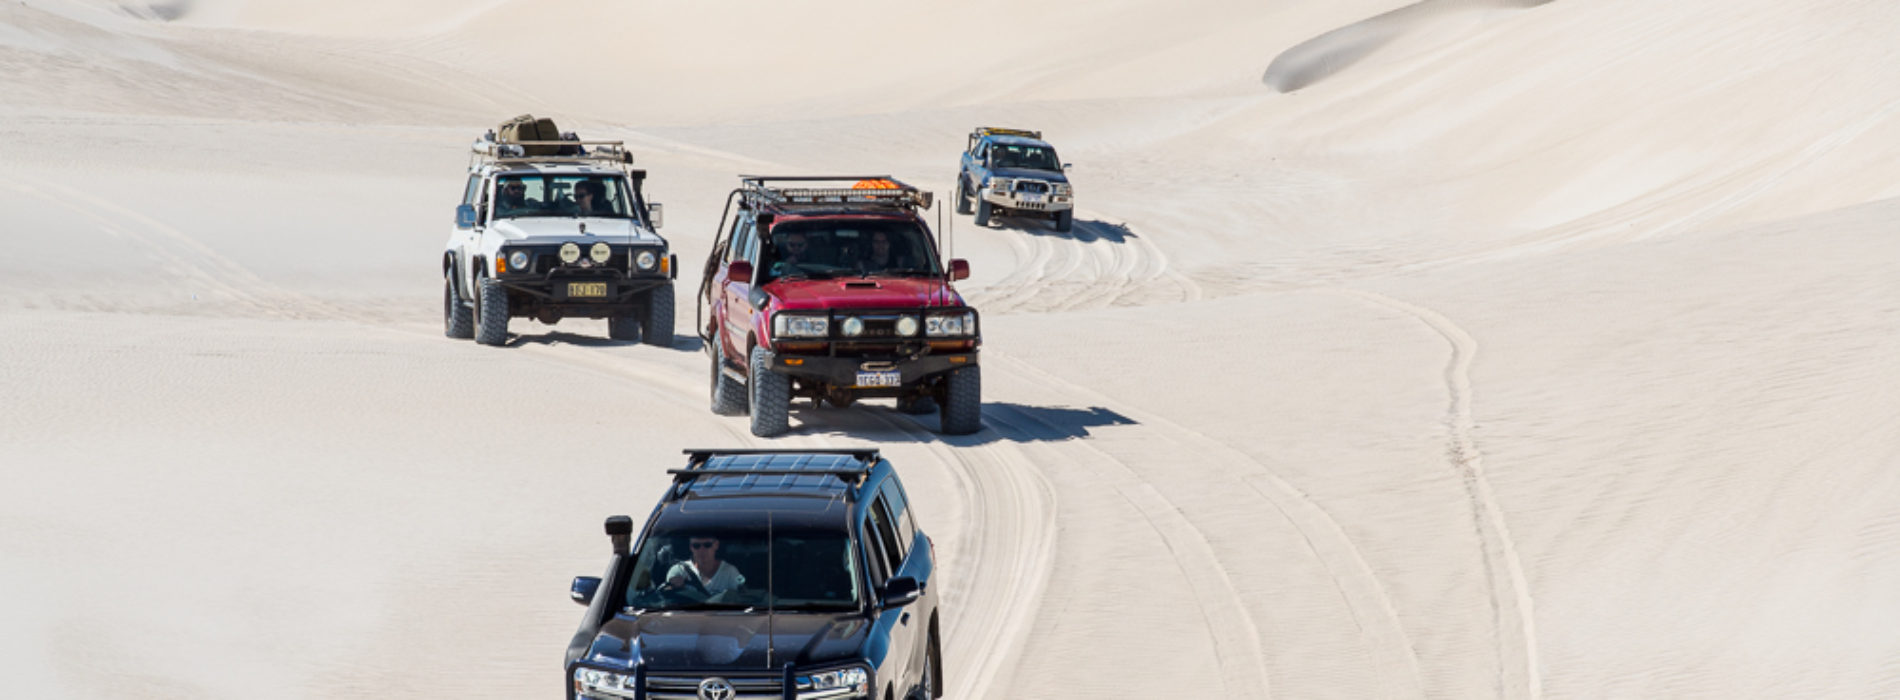 Lancelin to Cervantes Four Wheel Drive Trip